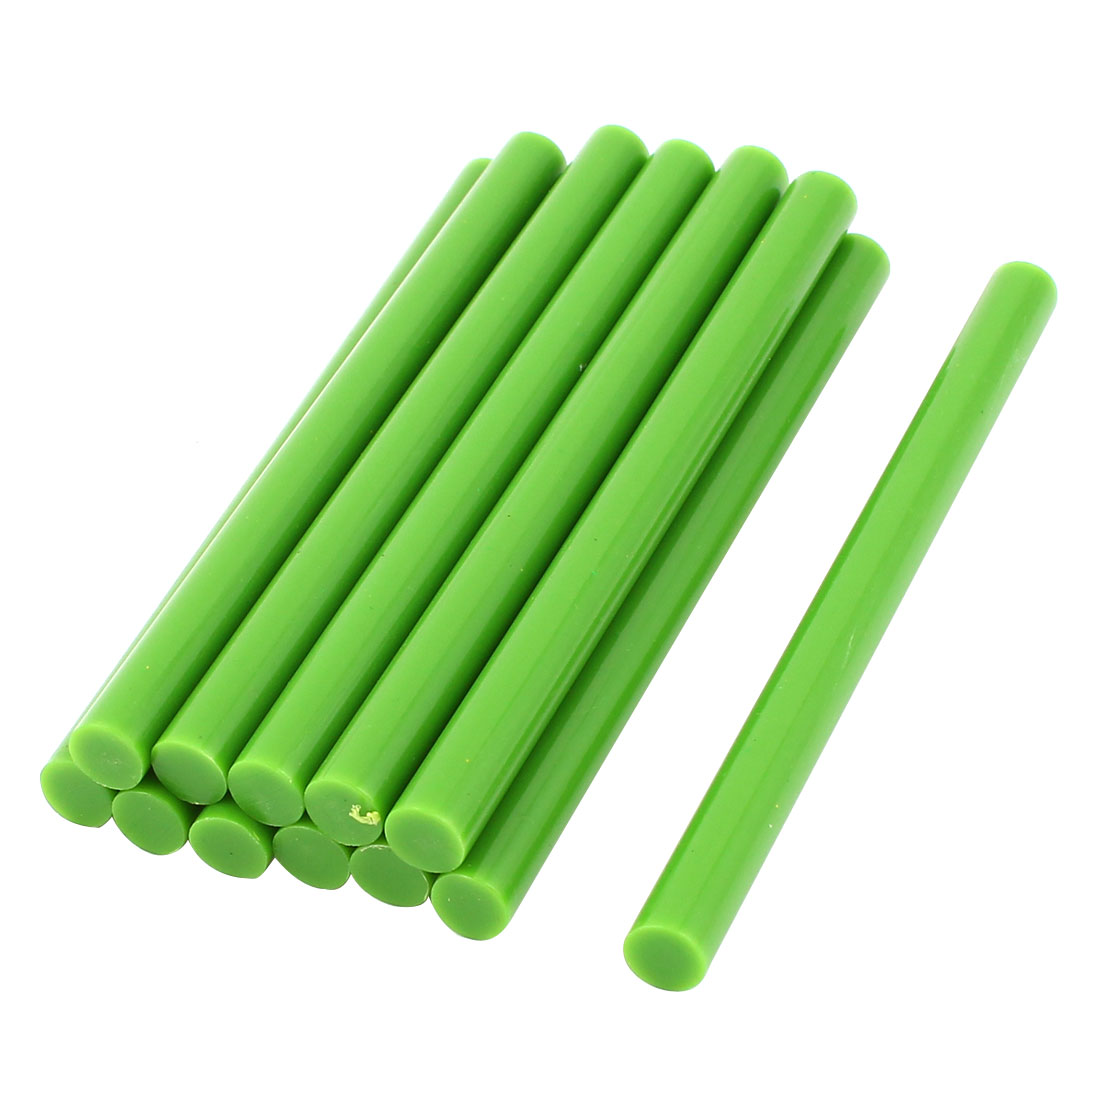 10 Pcs Green Hot Melt Glue Gun Adhesive Sticks 7mm x 100mm